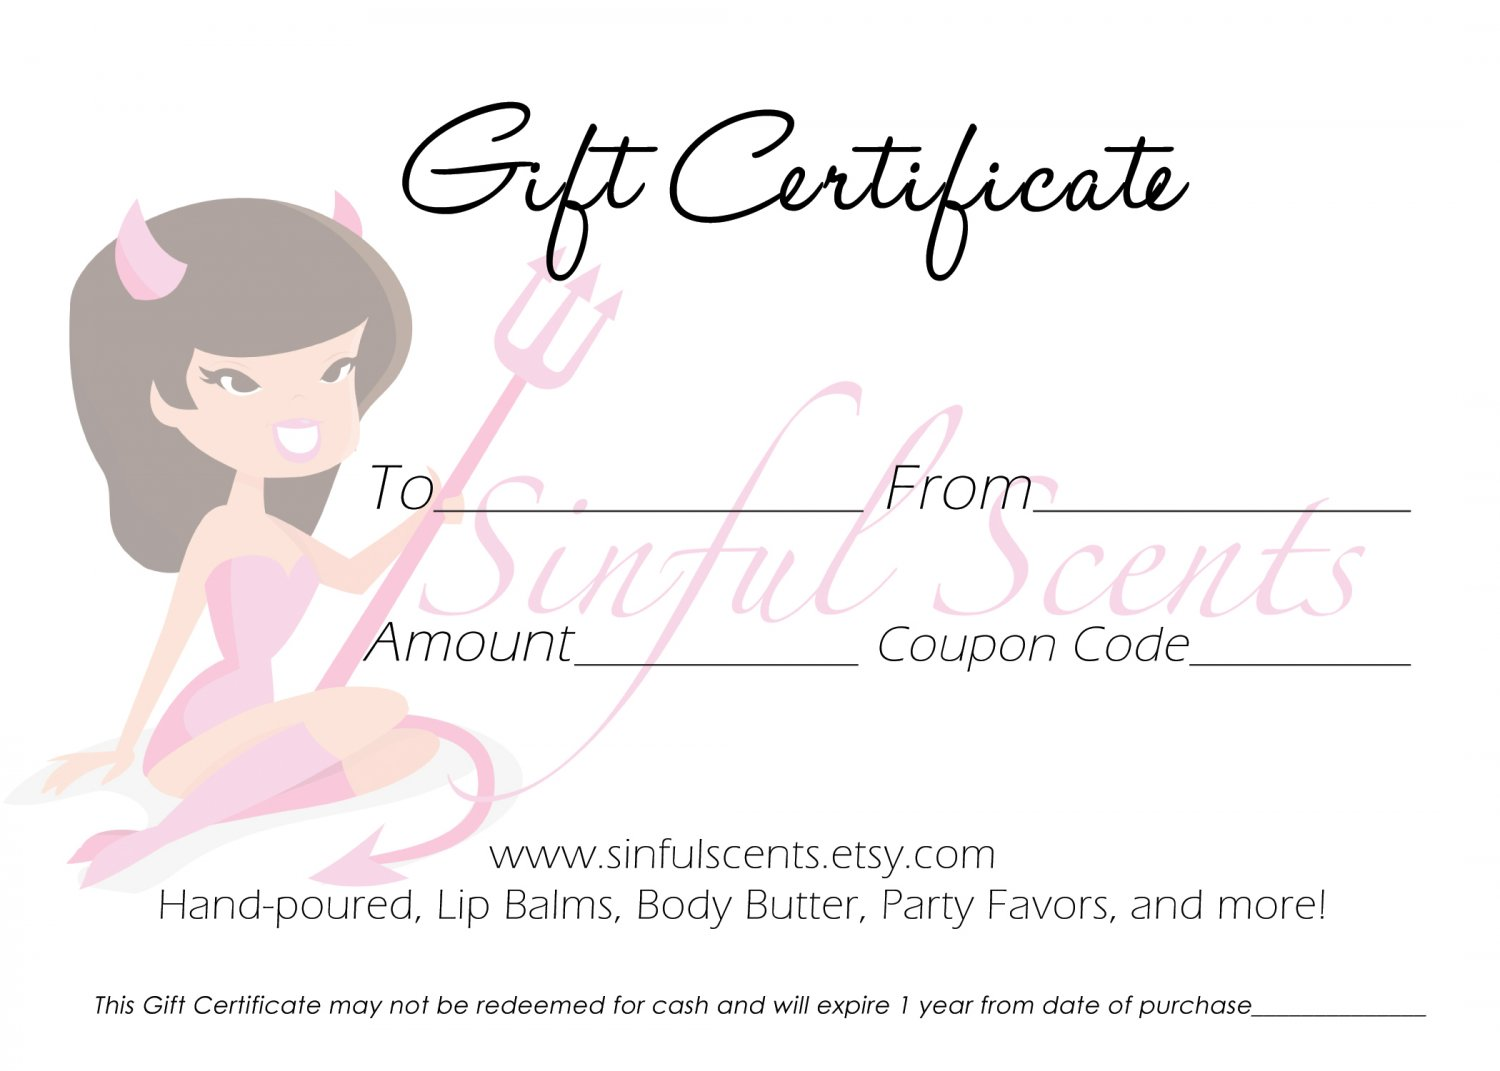 10.00 Sinful Scents Gift Certificate